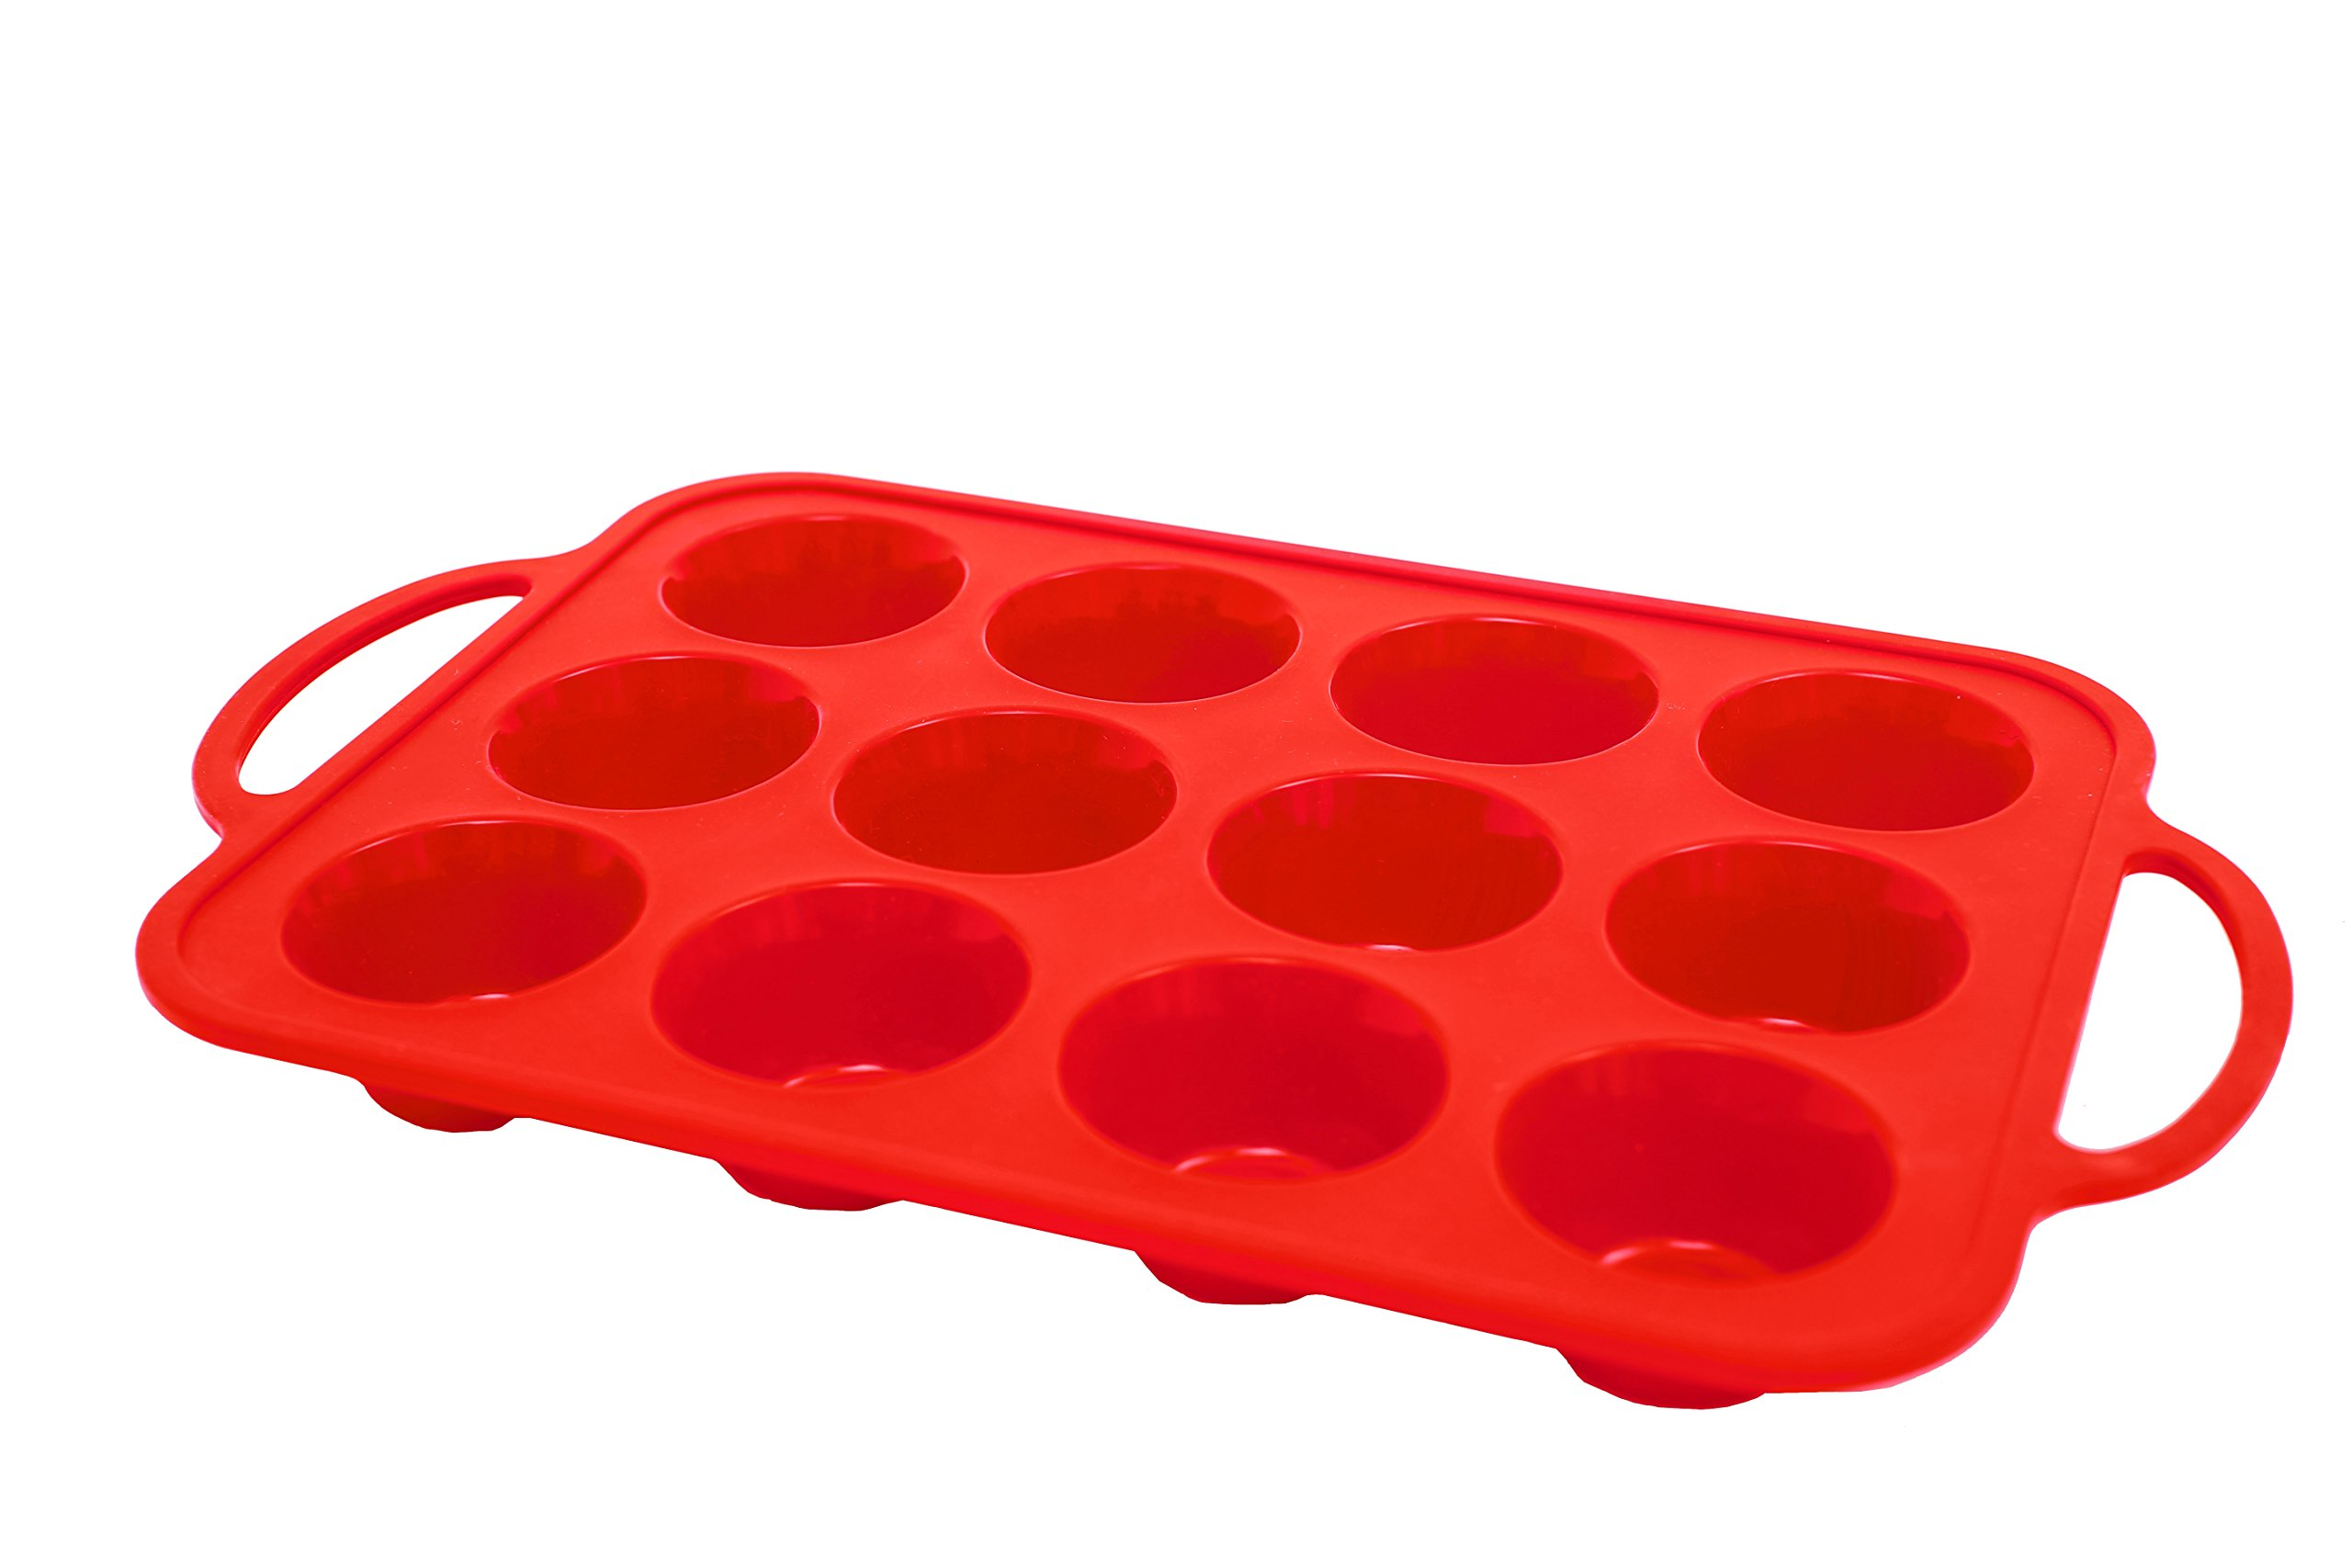 Metal Frame Premium Silicone Muffin Pan / Tin Cupcake Mold by Daisy's Dream - 12-Cup Silicone Pan / Baking Tray - Easy To Use - Simple To Clean by Daisy's Gifts